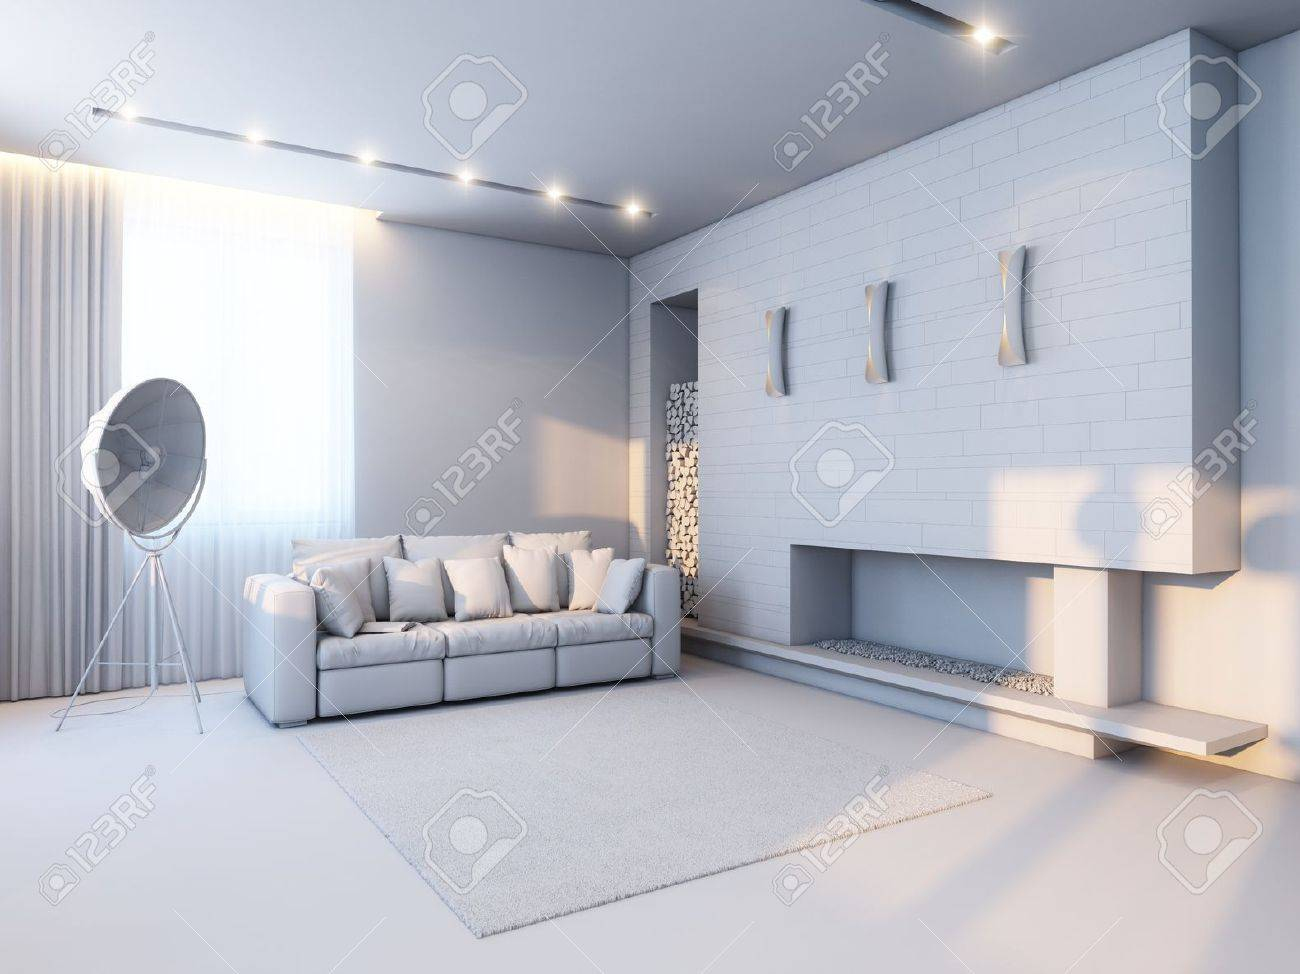 new interior design in the style of minimalism  version in gray material Stock Photo - 14949024